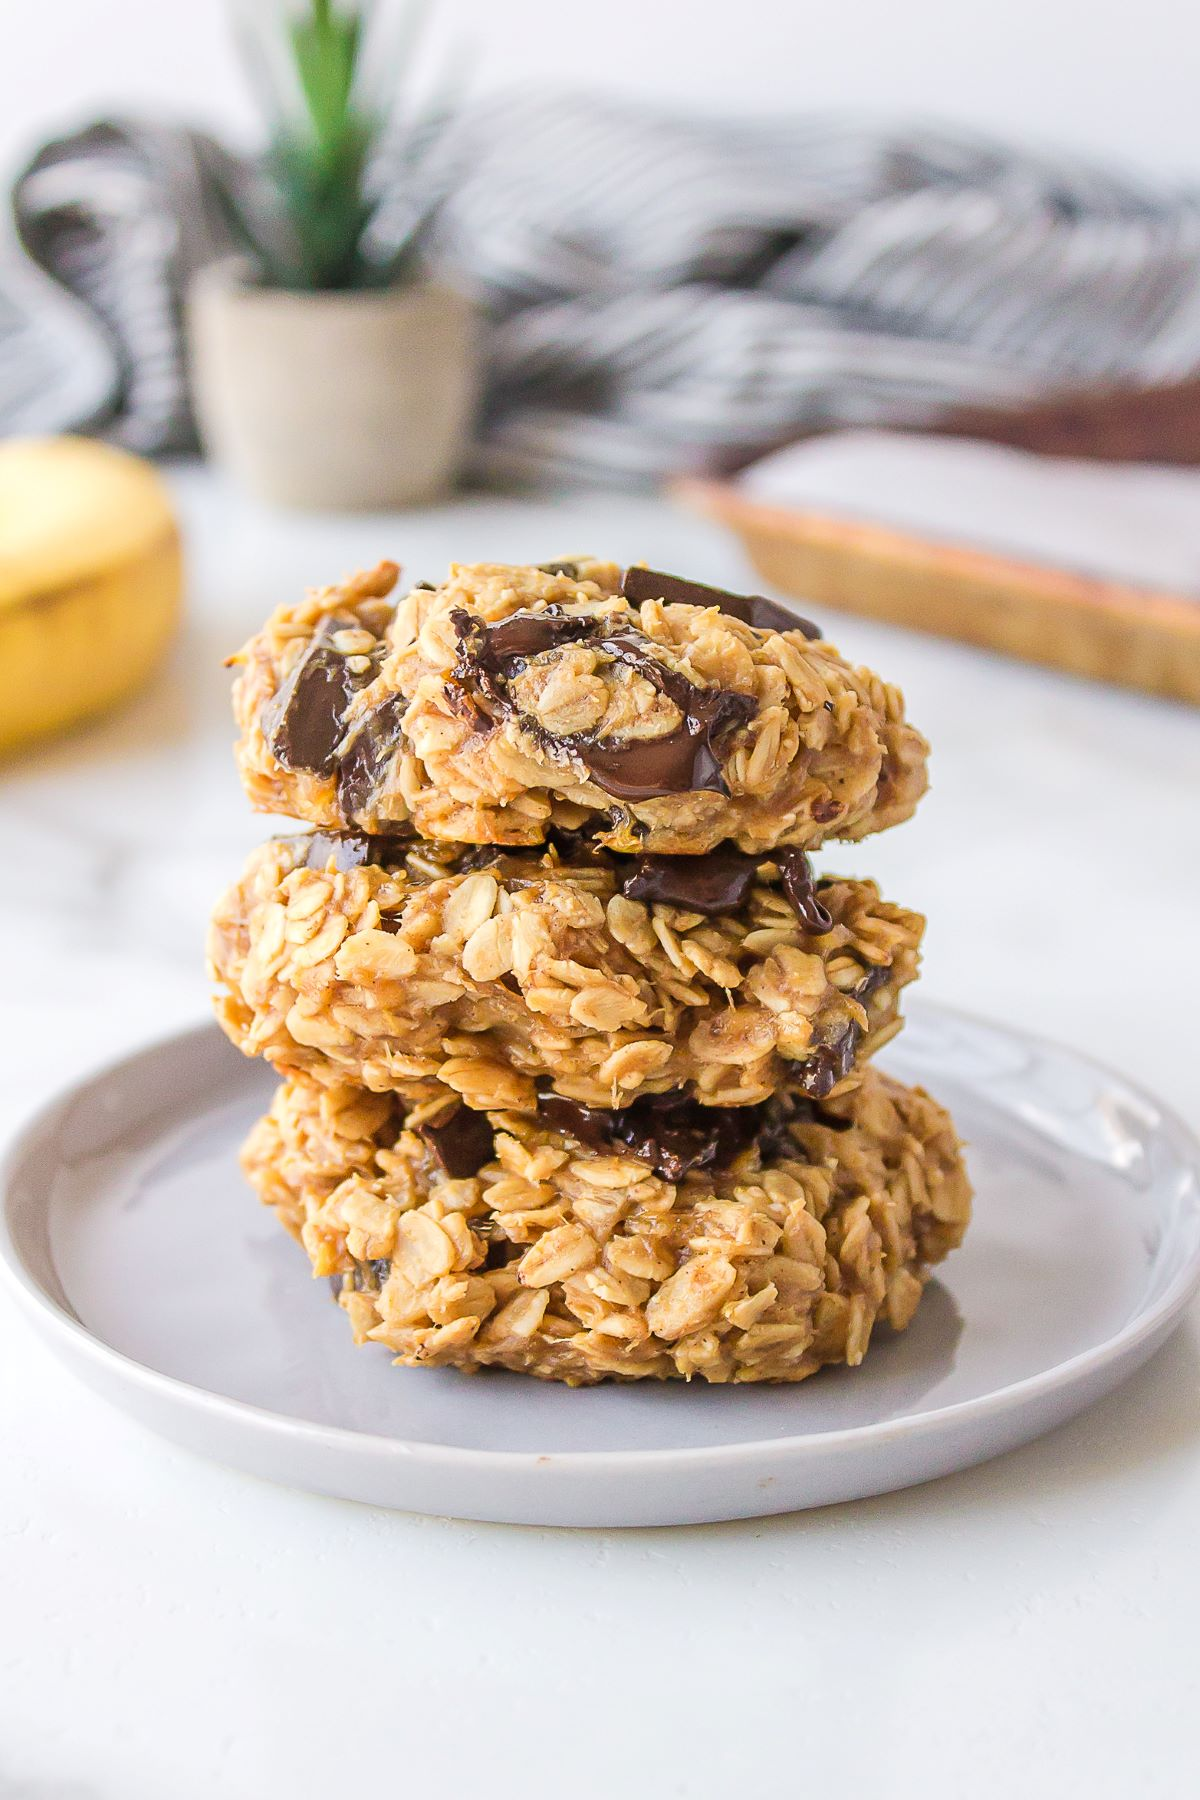 Three baked breakfast cookies, stacked on top of each other.